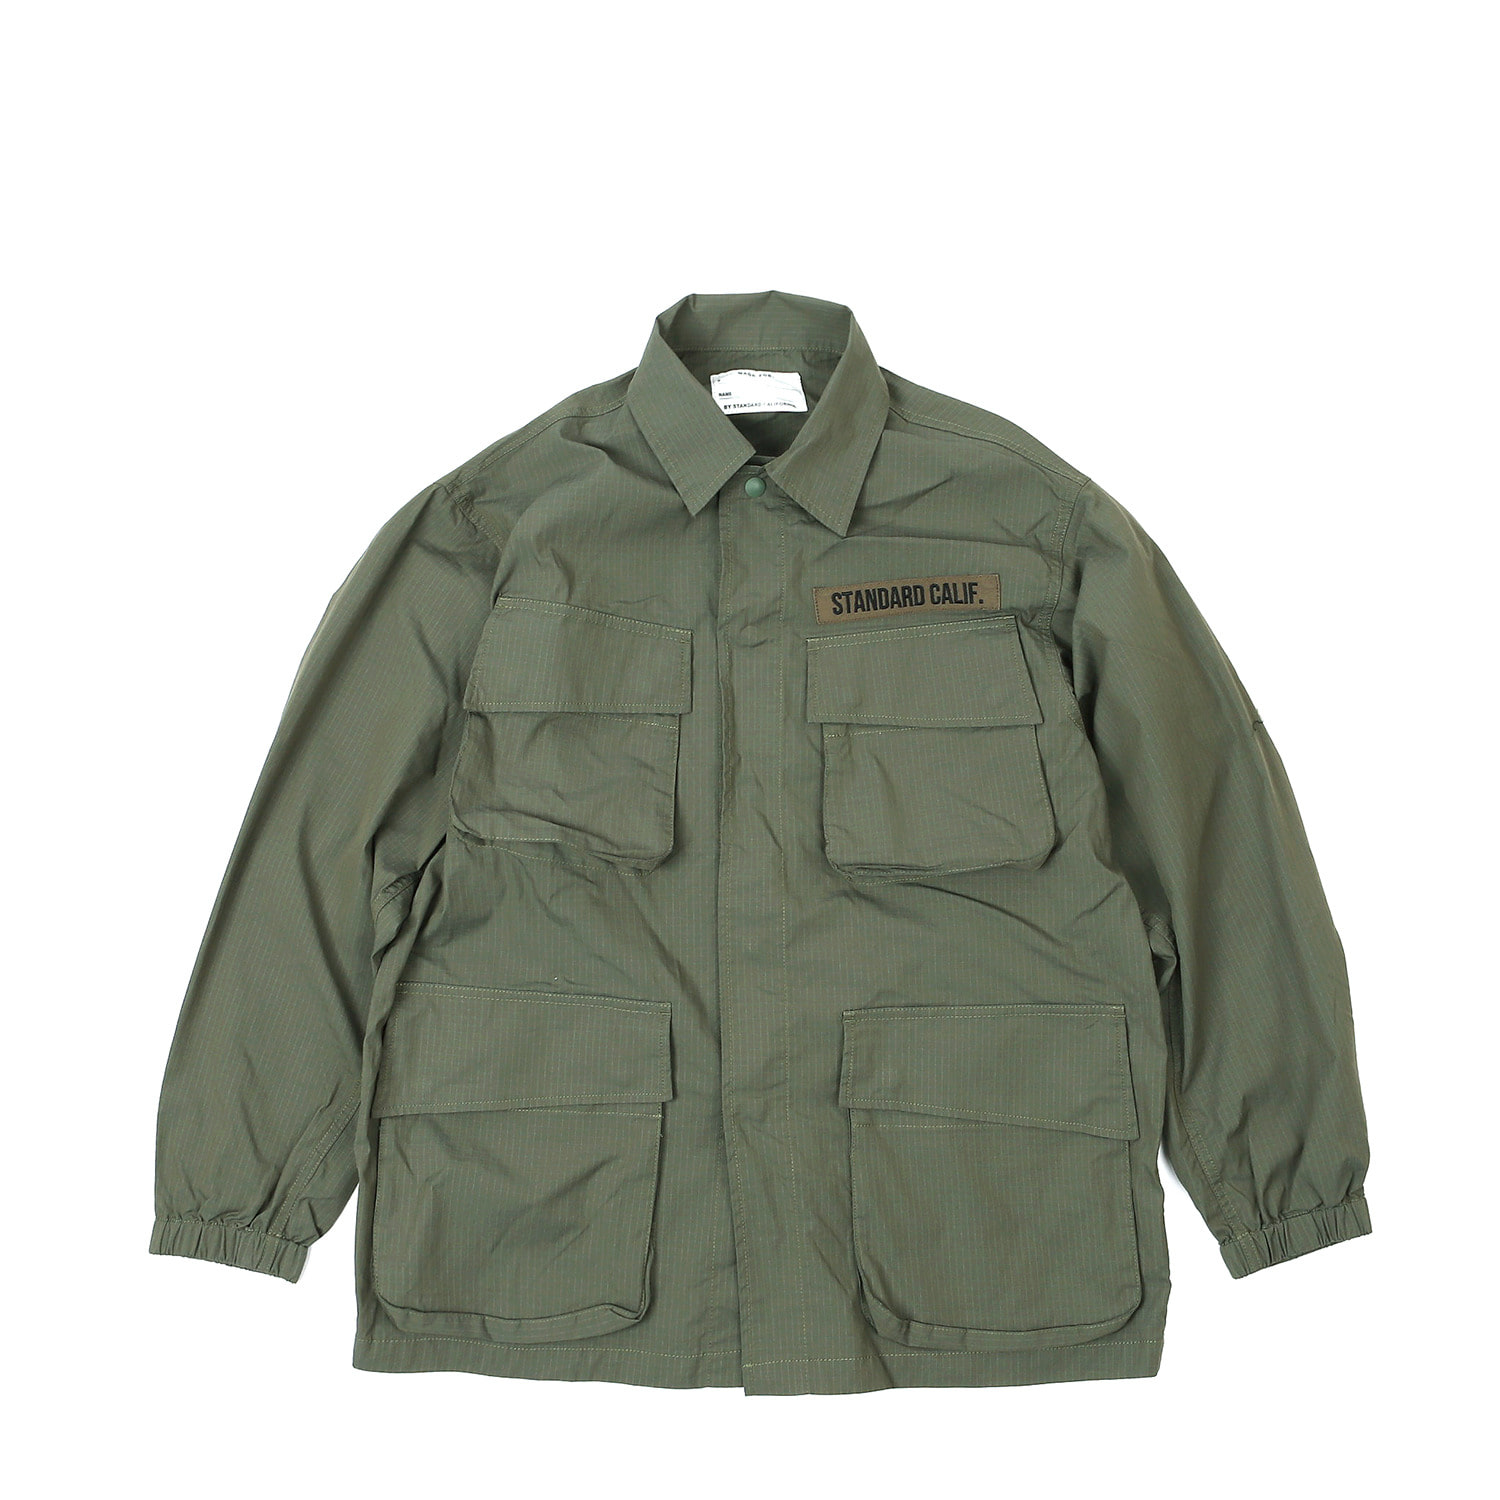 SD Coolmax Stretch Ripstop Jungle Fatigue Jacket (Olive)